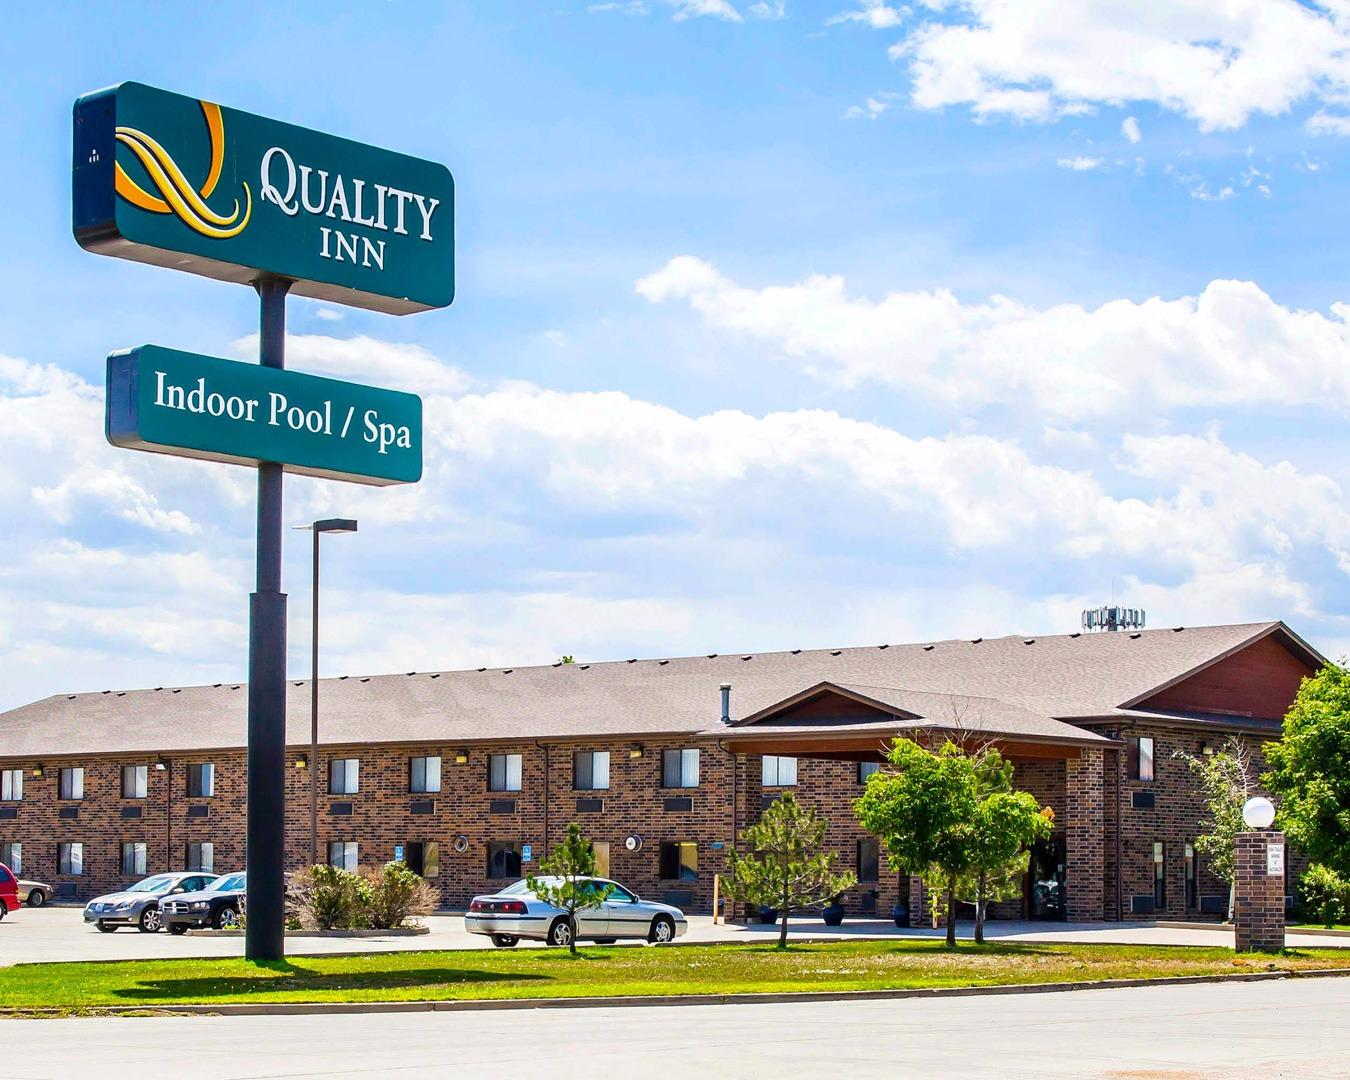 Quality inn coupon code